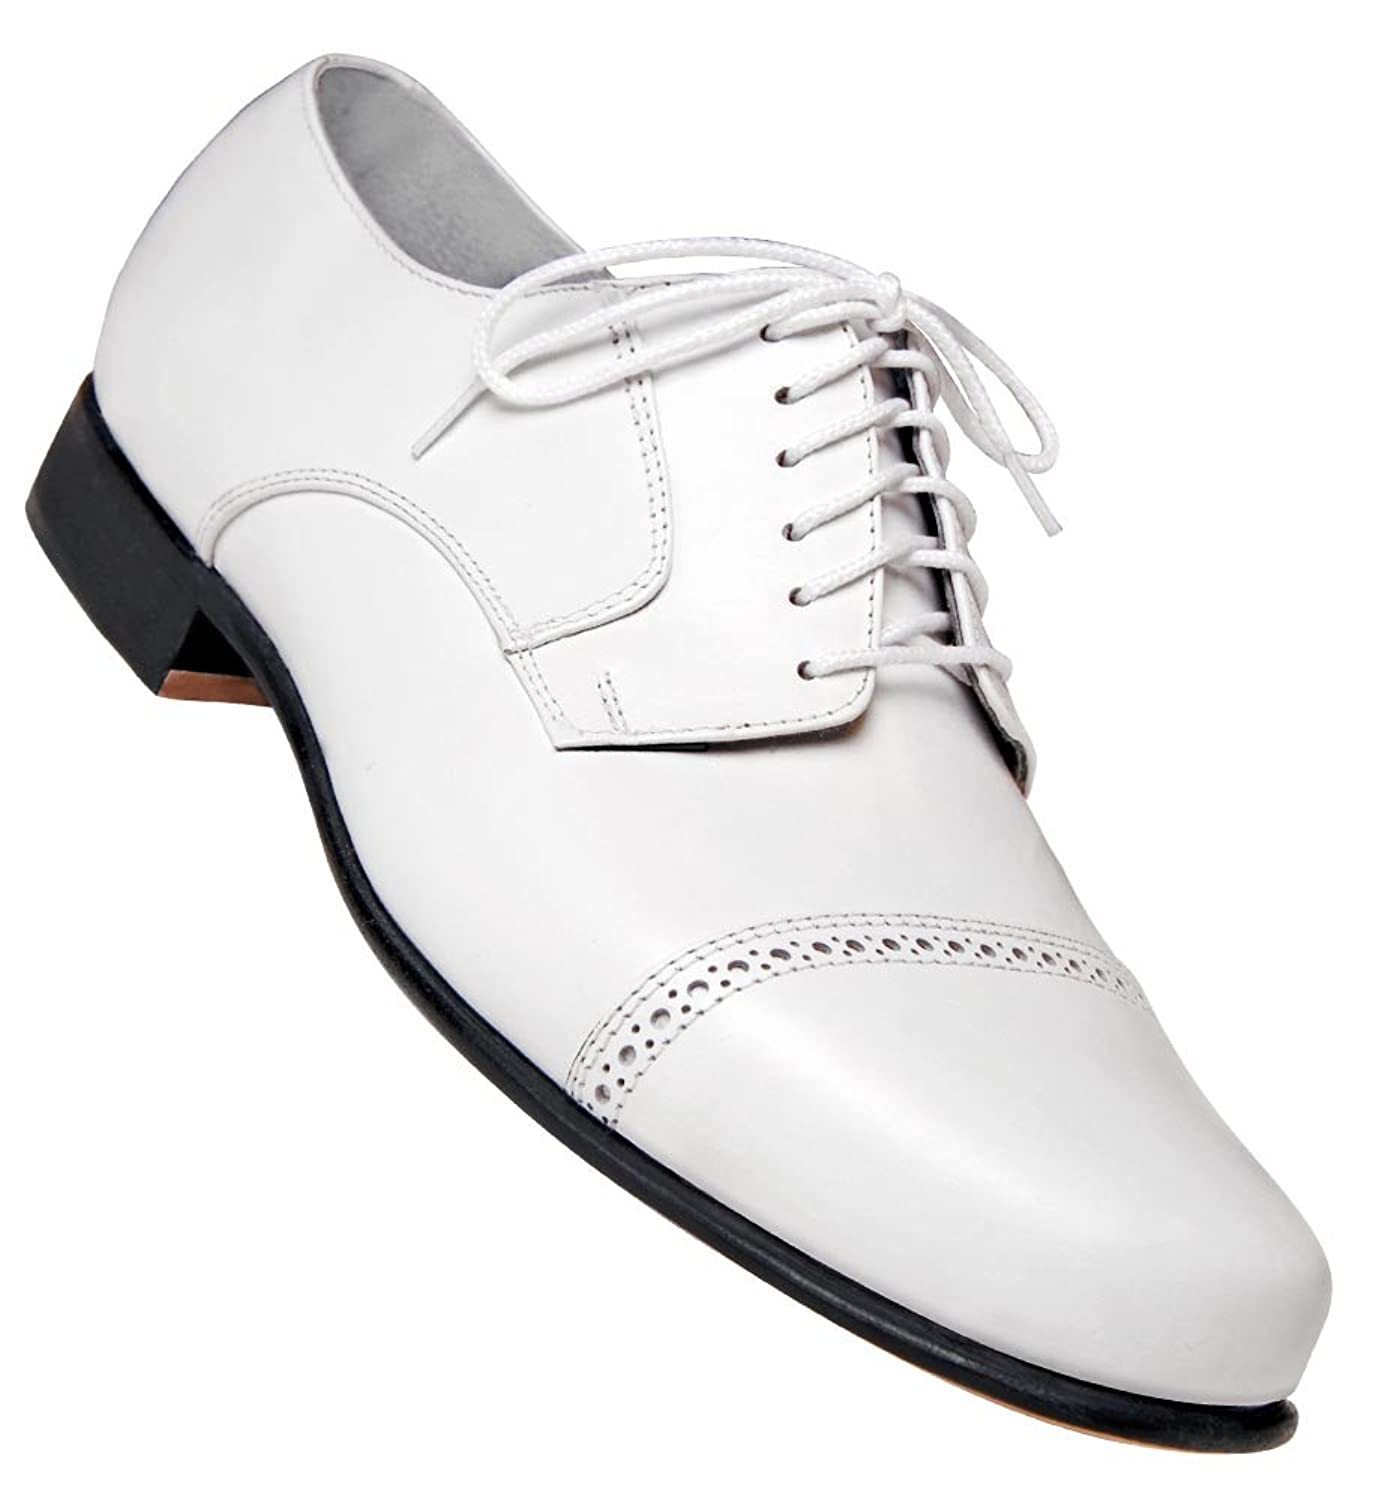 1920s Style Mens Shoes | Peaky Blinders Boots Mens 1930s White Captoe Dance Shoe $74.95 AT vintagedancer.com